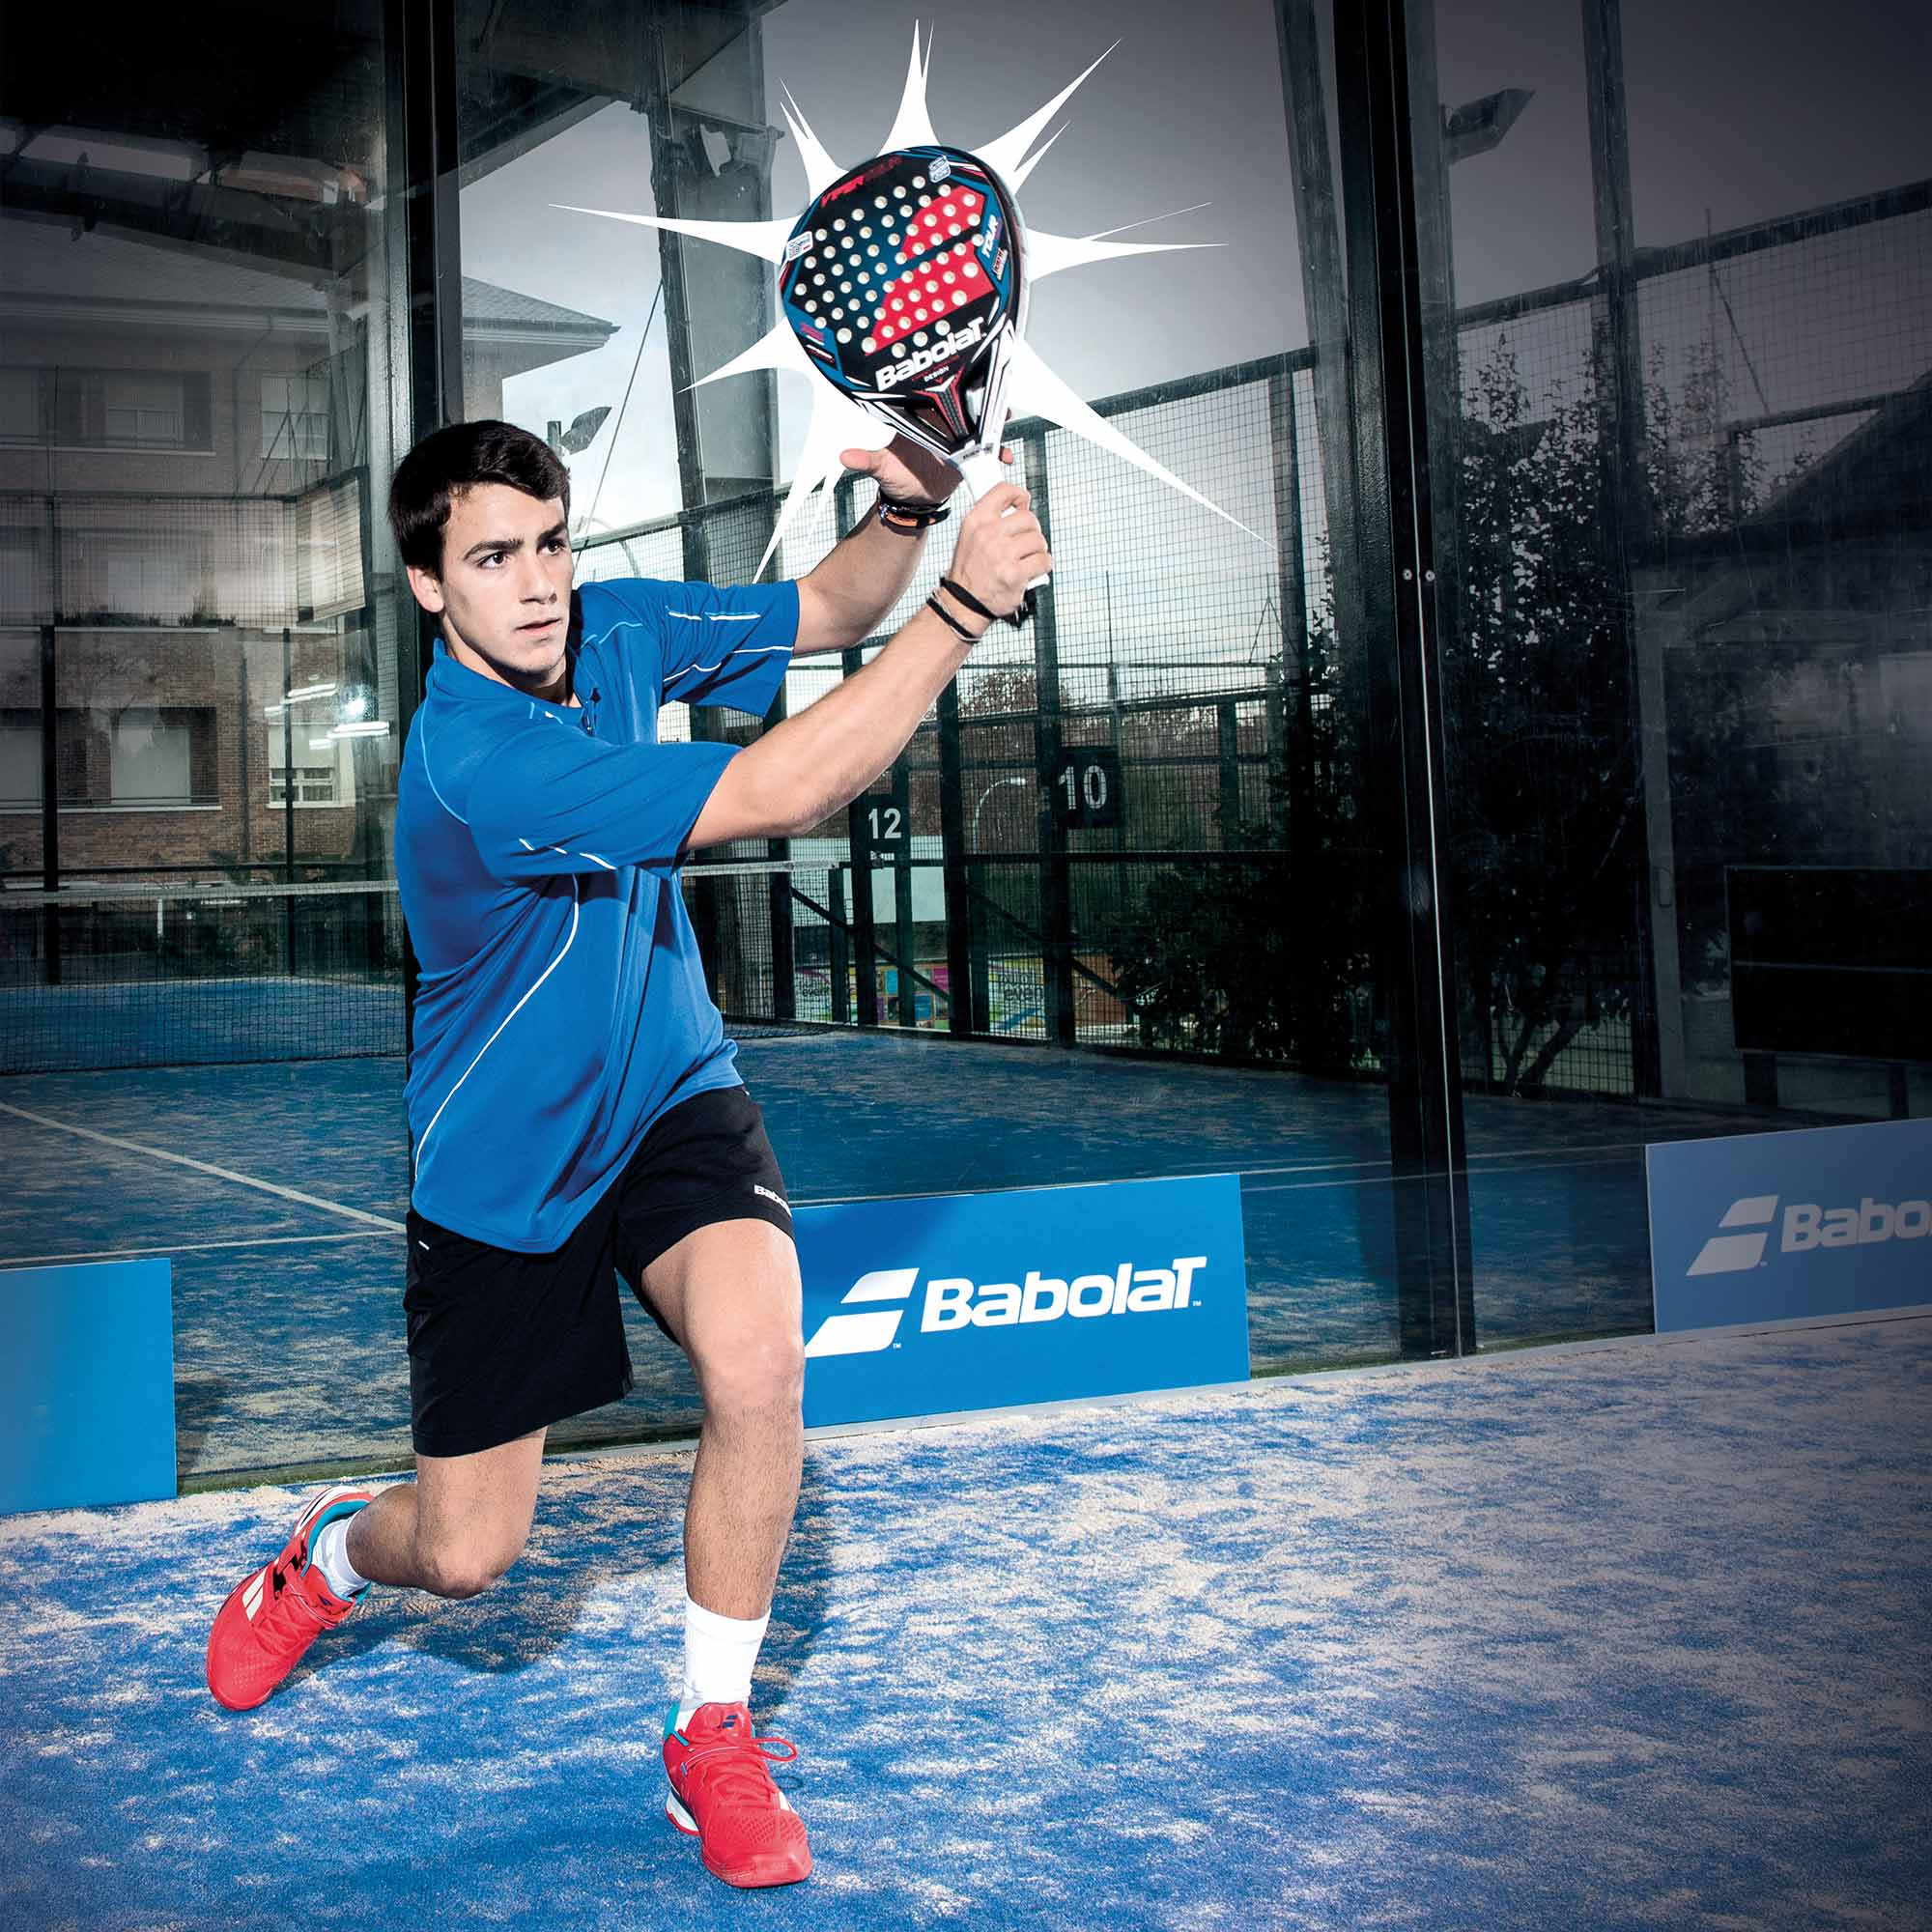 Racket - Padel - Köp online hos Intersport 66bdb1c209426